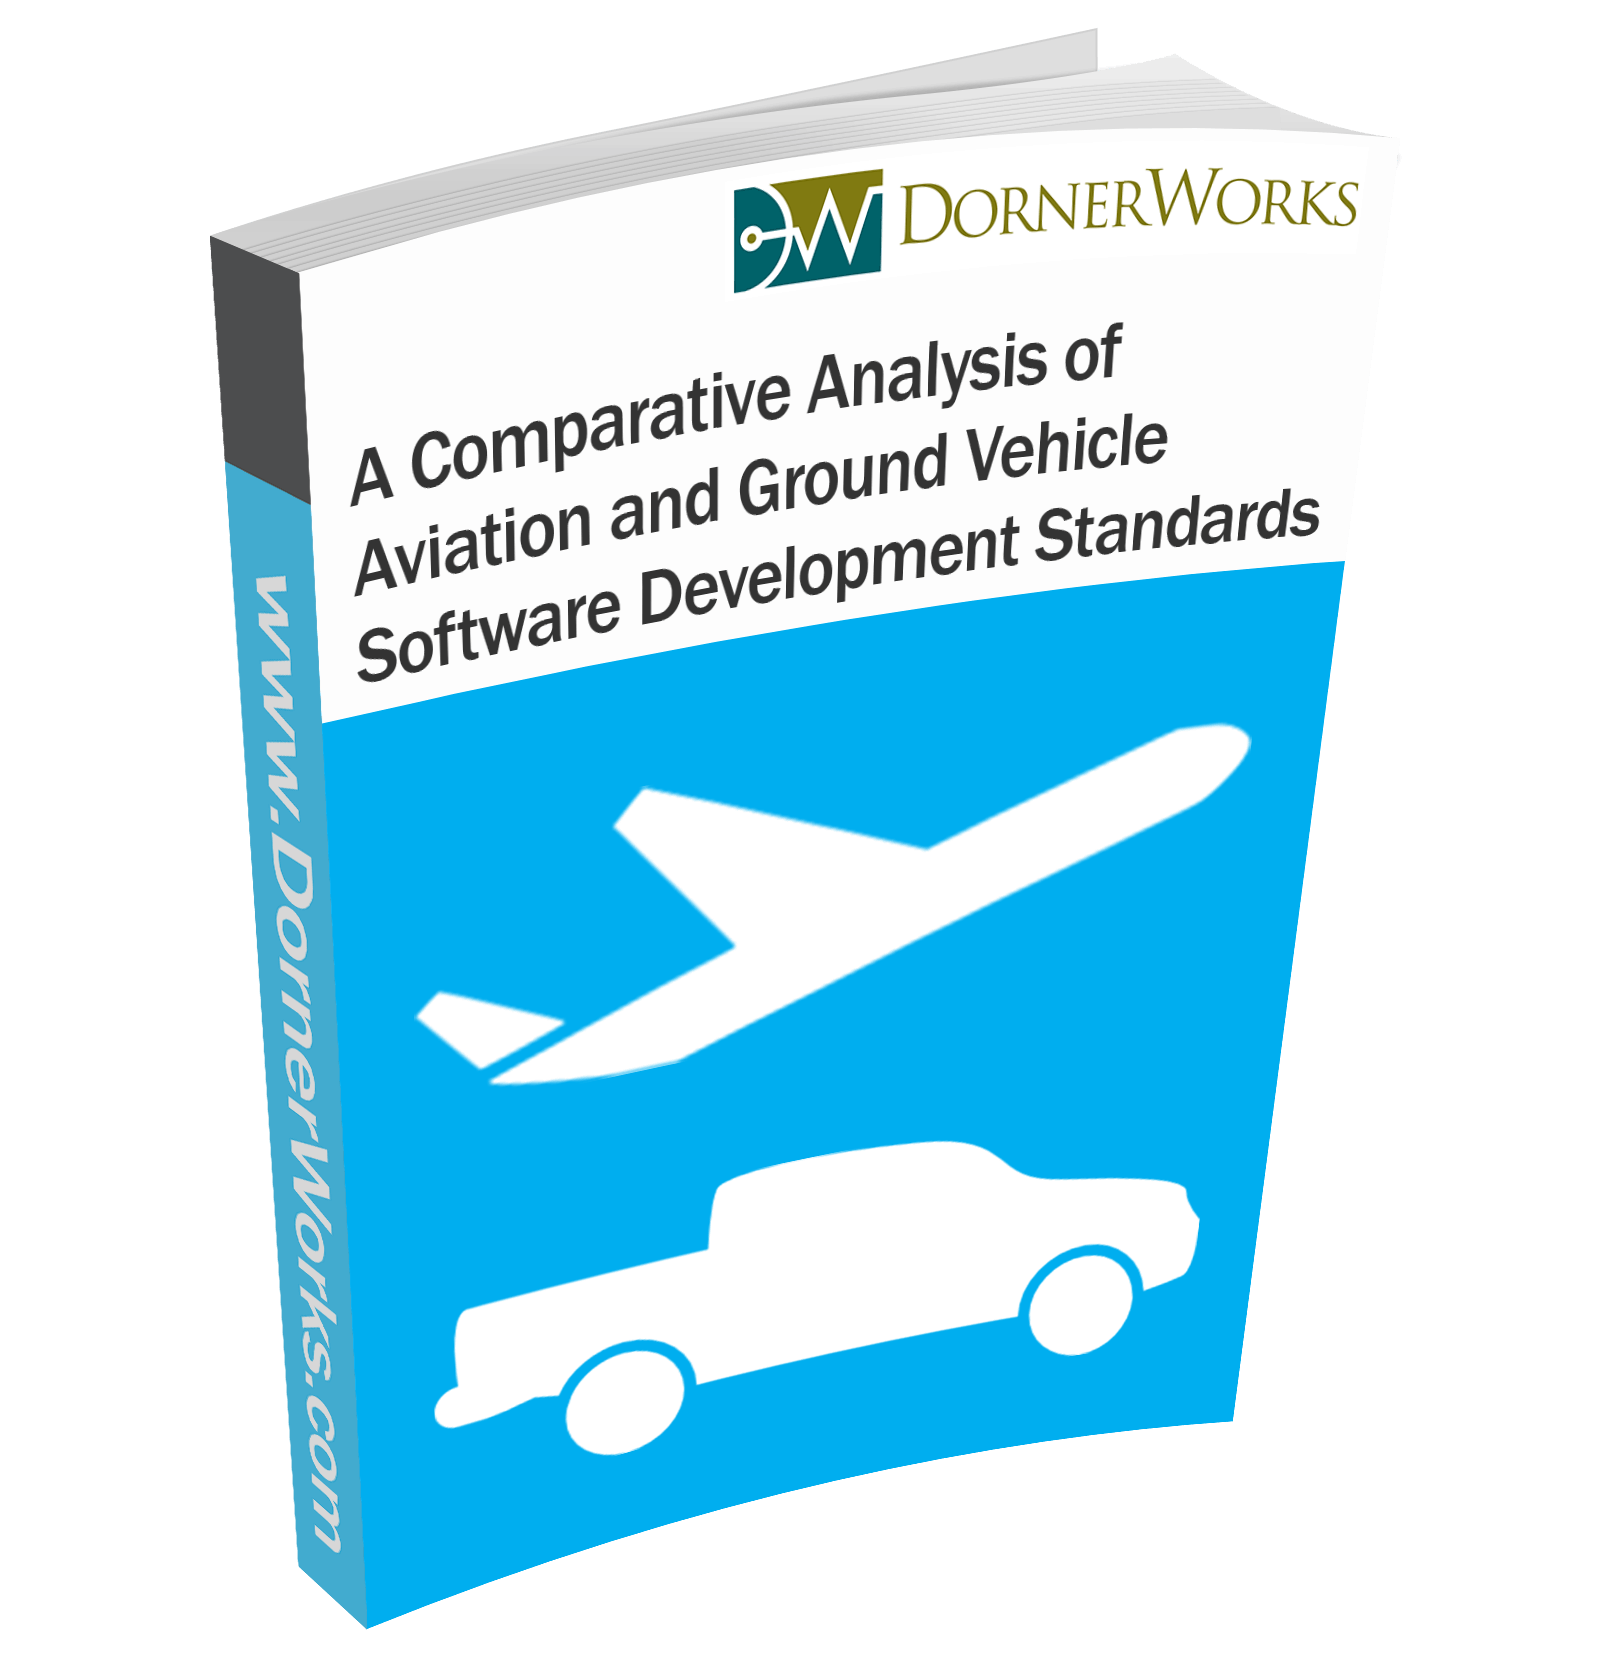 A Comparative Analysis of Aviation and Ground Vehicle Software Development Standards